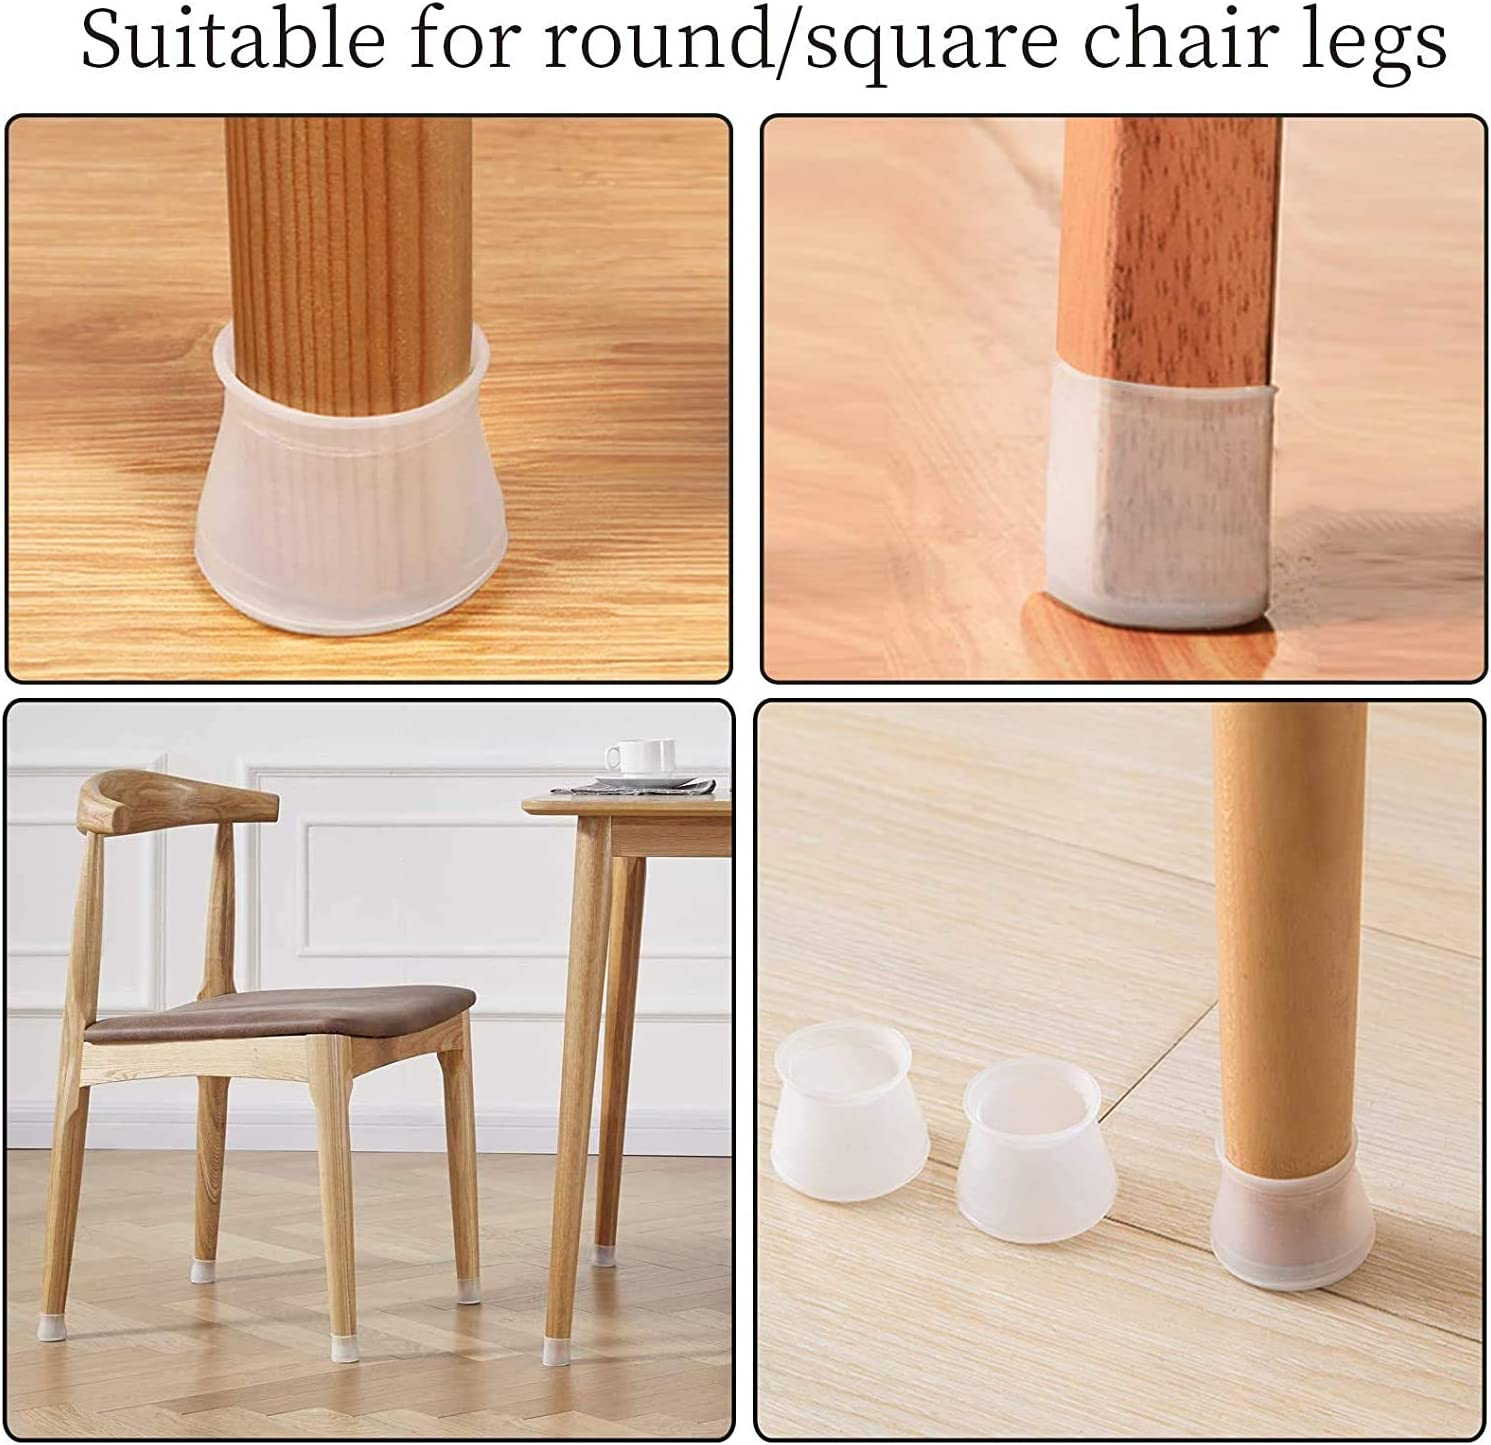 3-4.5cm 32 Pieces Chair Leg Caps Floor Protectors Anti-Slip Table Feet Cover Floor Silicone Furniture Cups Pads Prevents Scratches Noise and Without Leaving Marks Fit Round 1.18 to 1.77